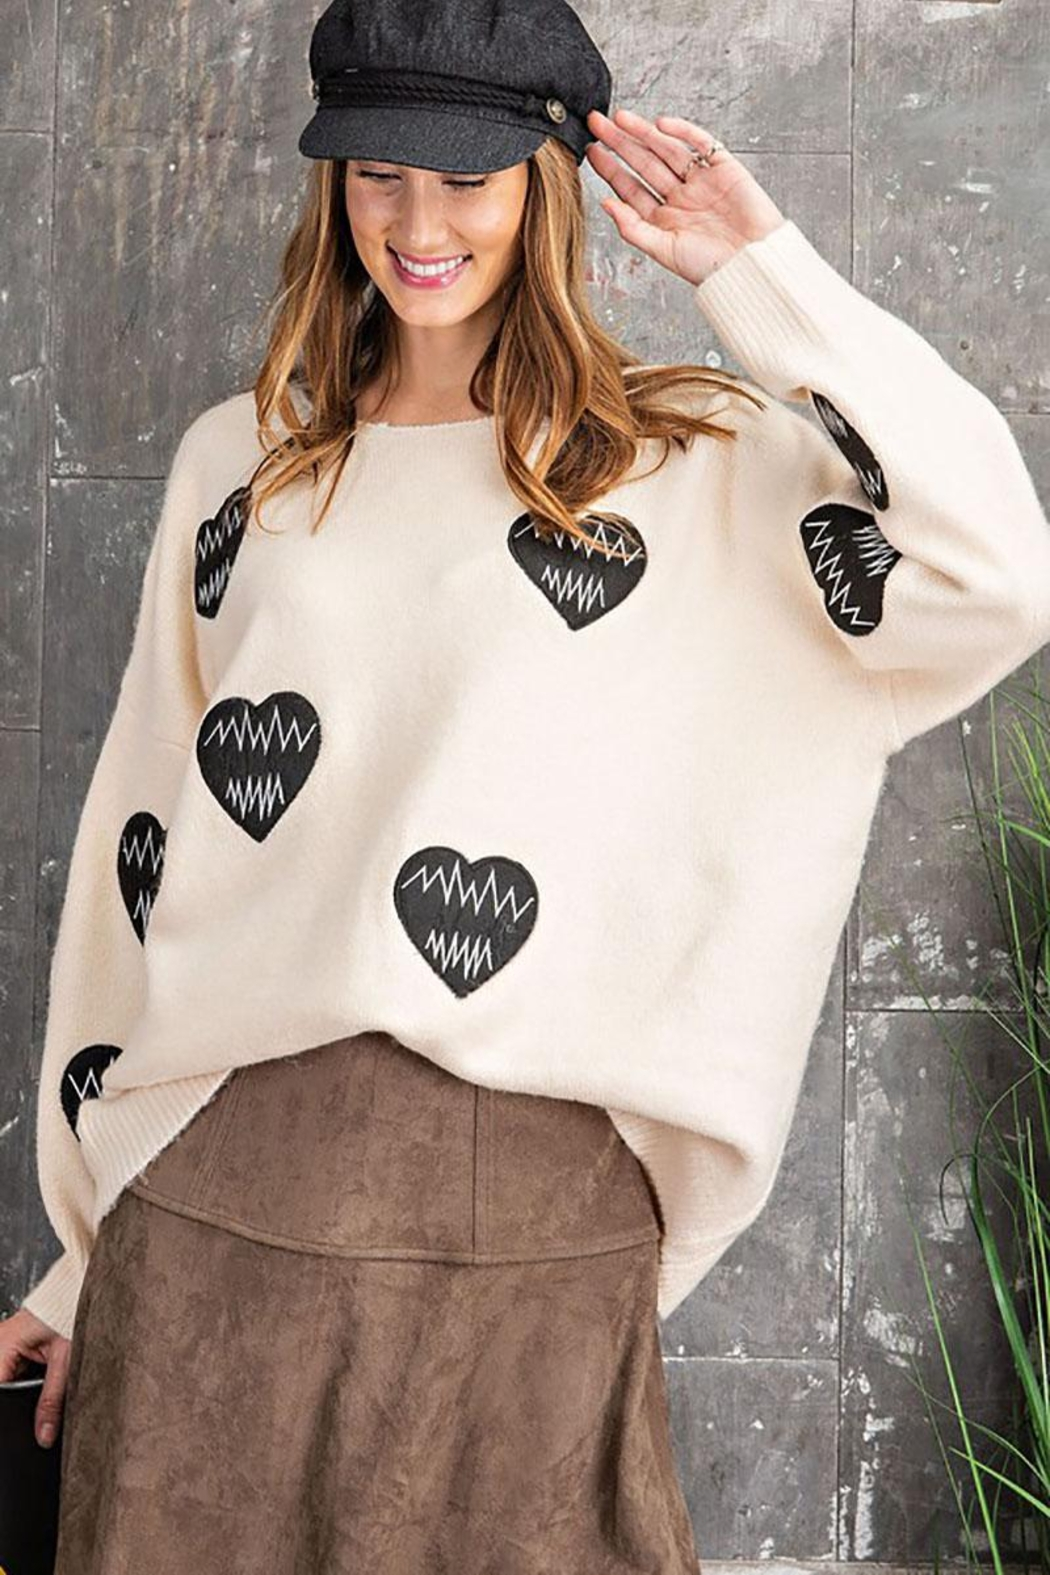 easel Women's Heartbeat Loose Fit Knit Pullover Sweater - Front Cropped Image